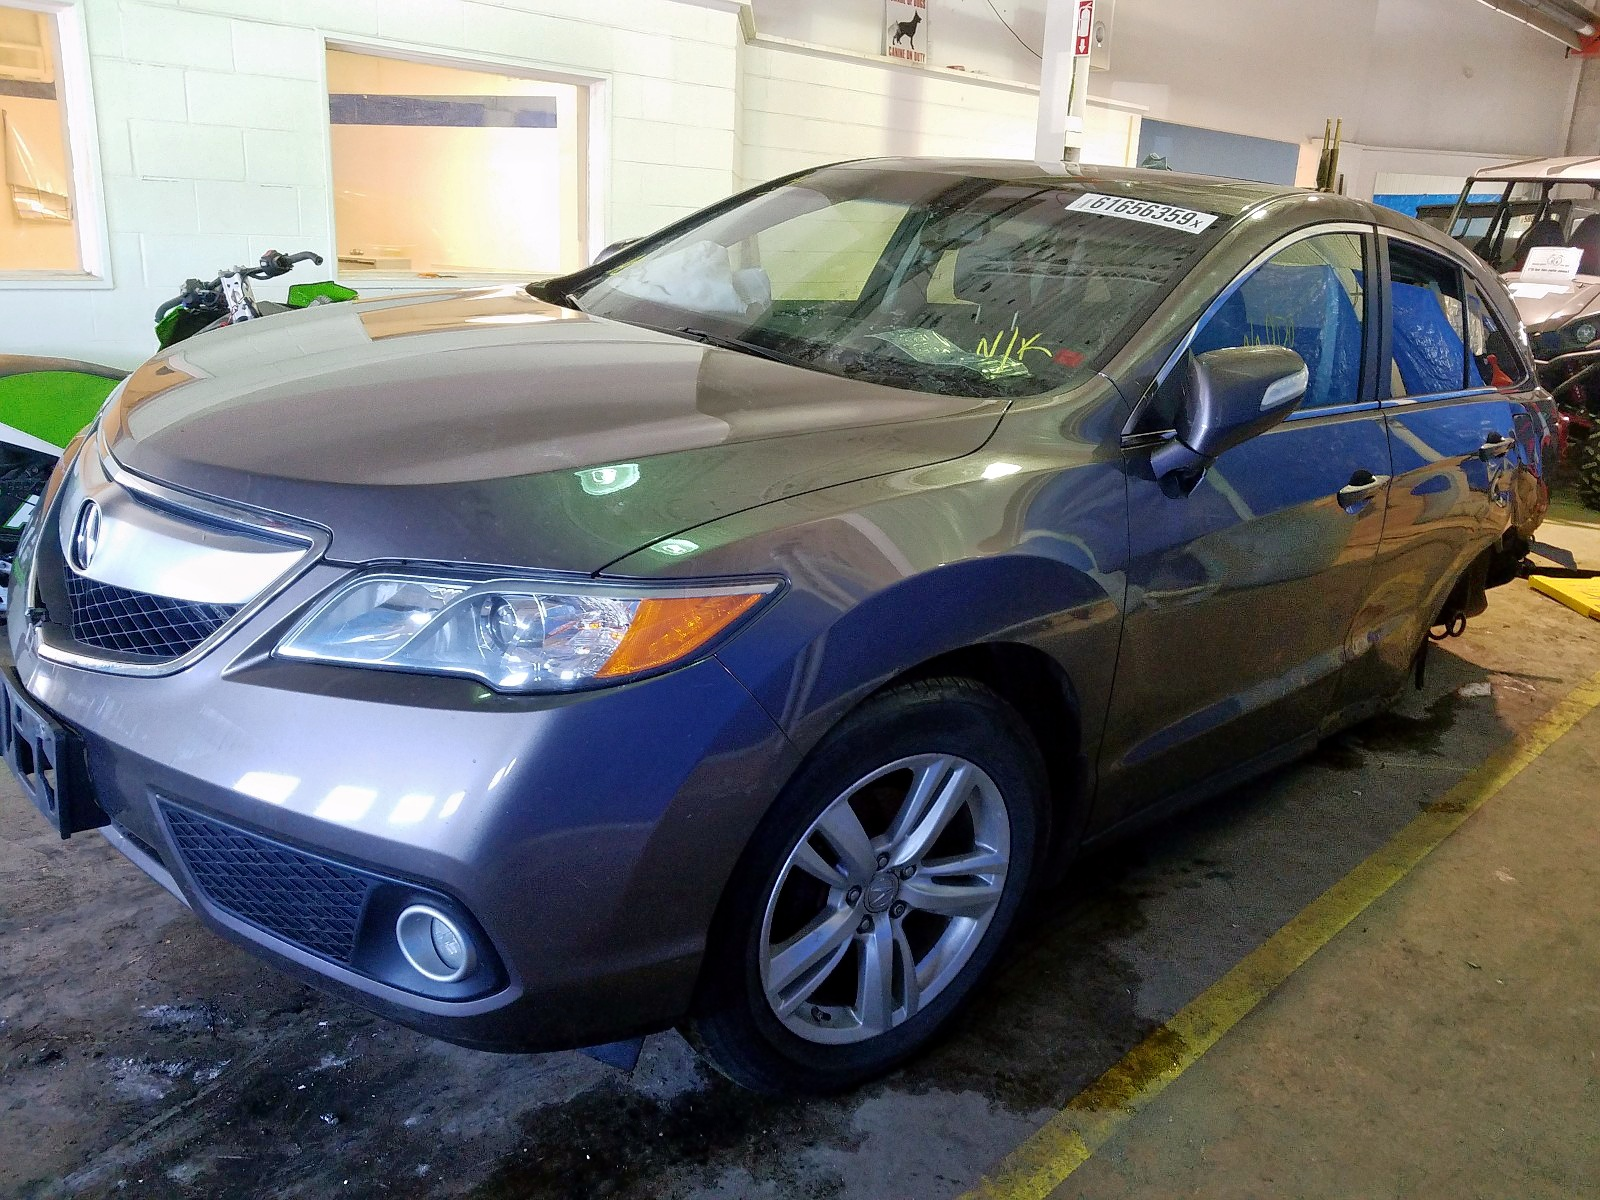 2013 Acura Rdx For Sale At Copart Moncton Nb Lot 61656359 Salvagereseller Com